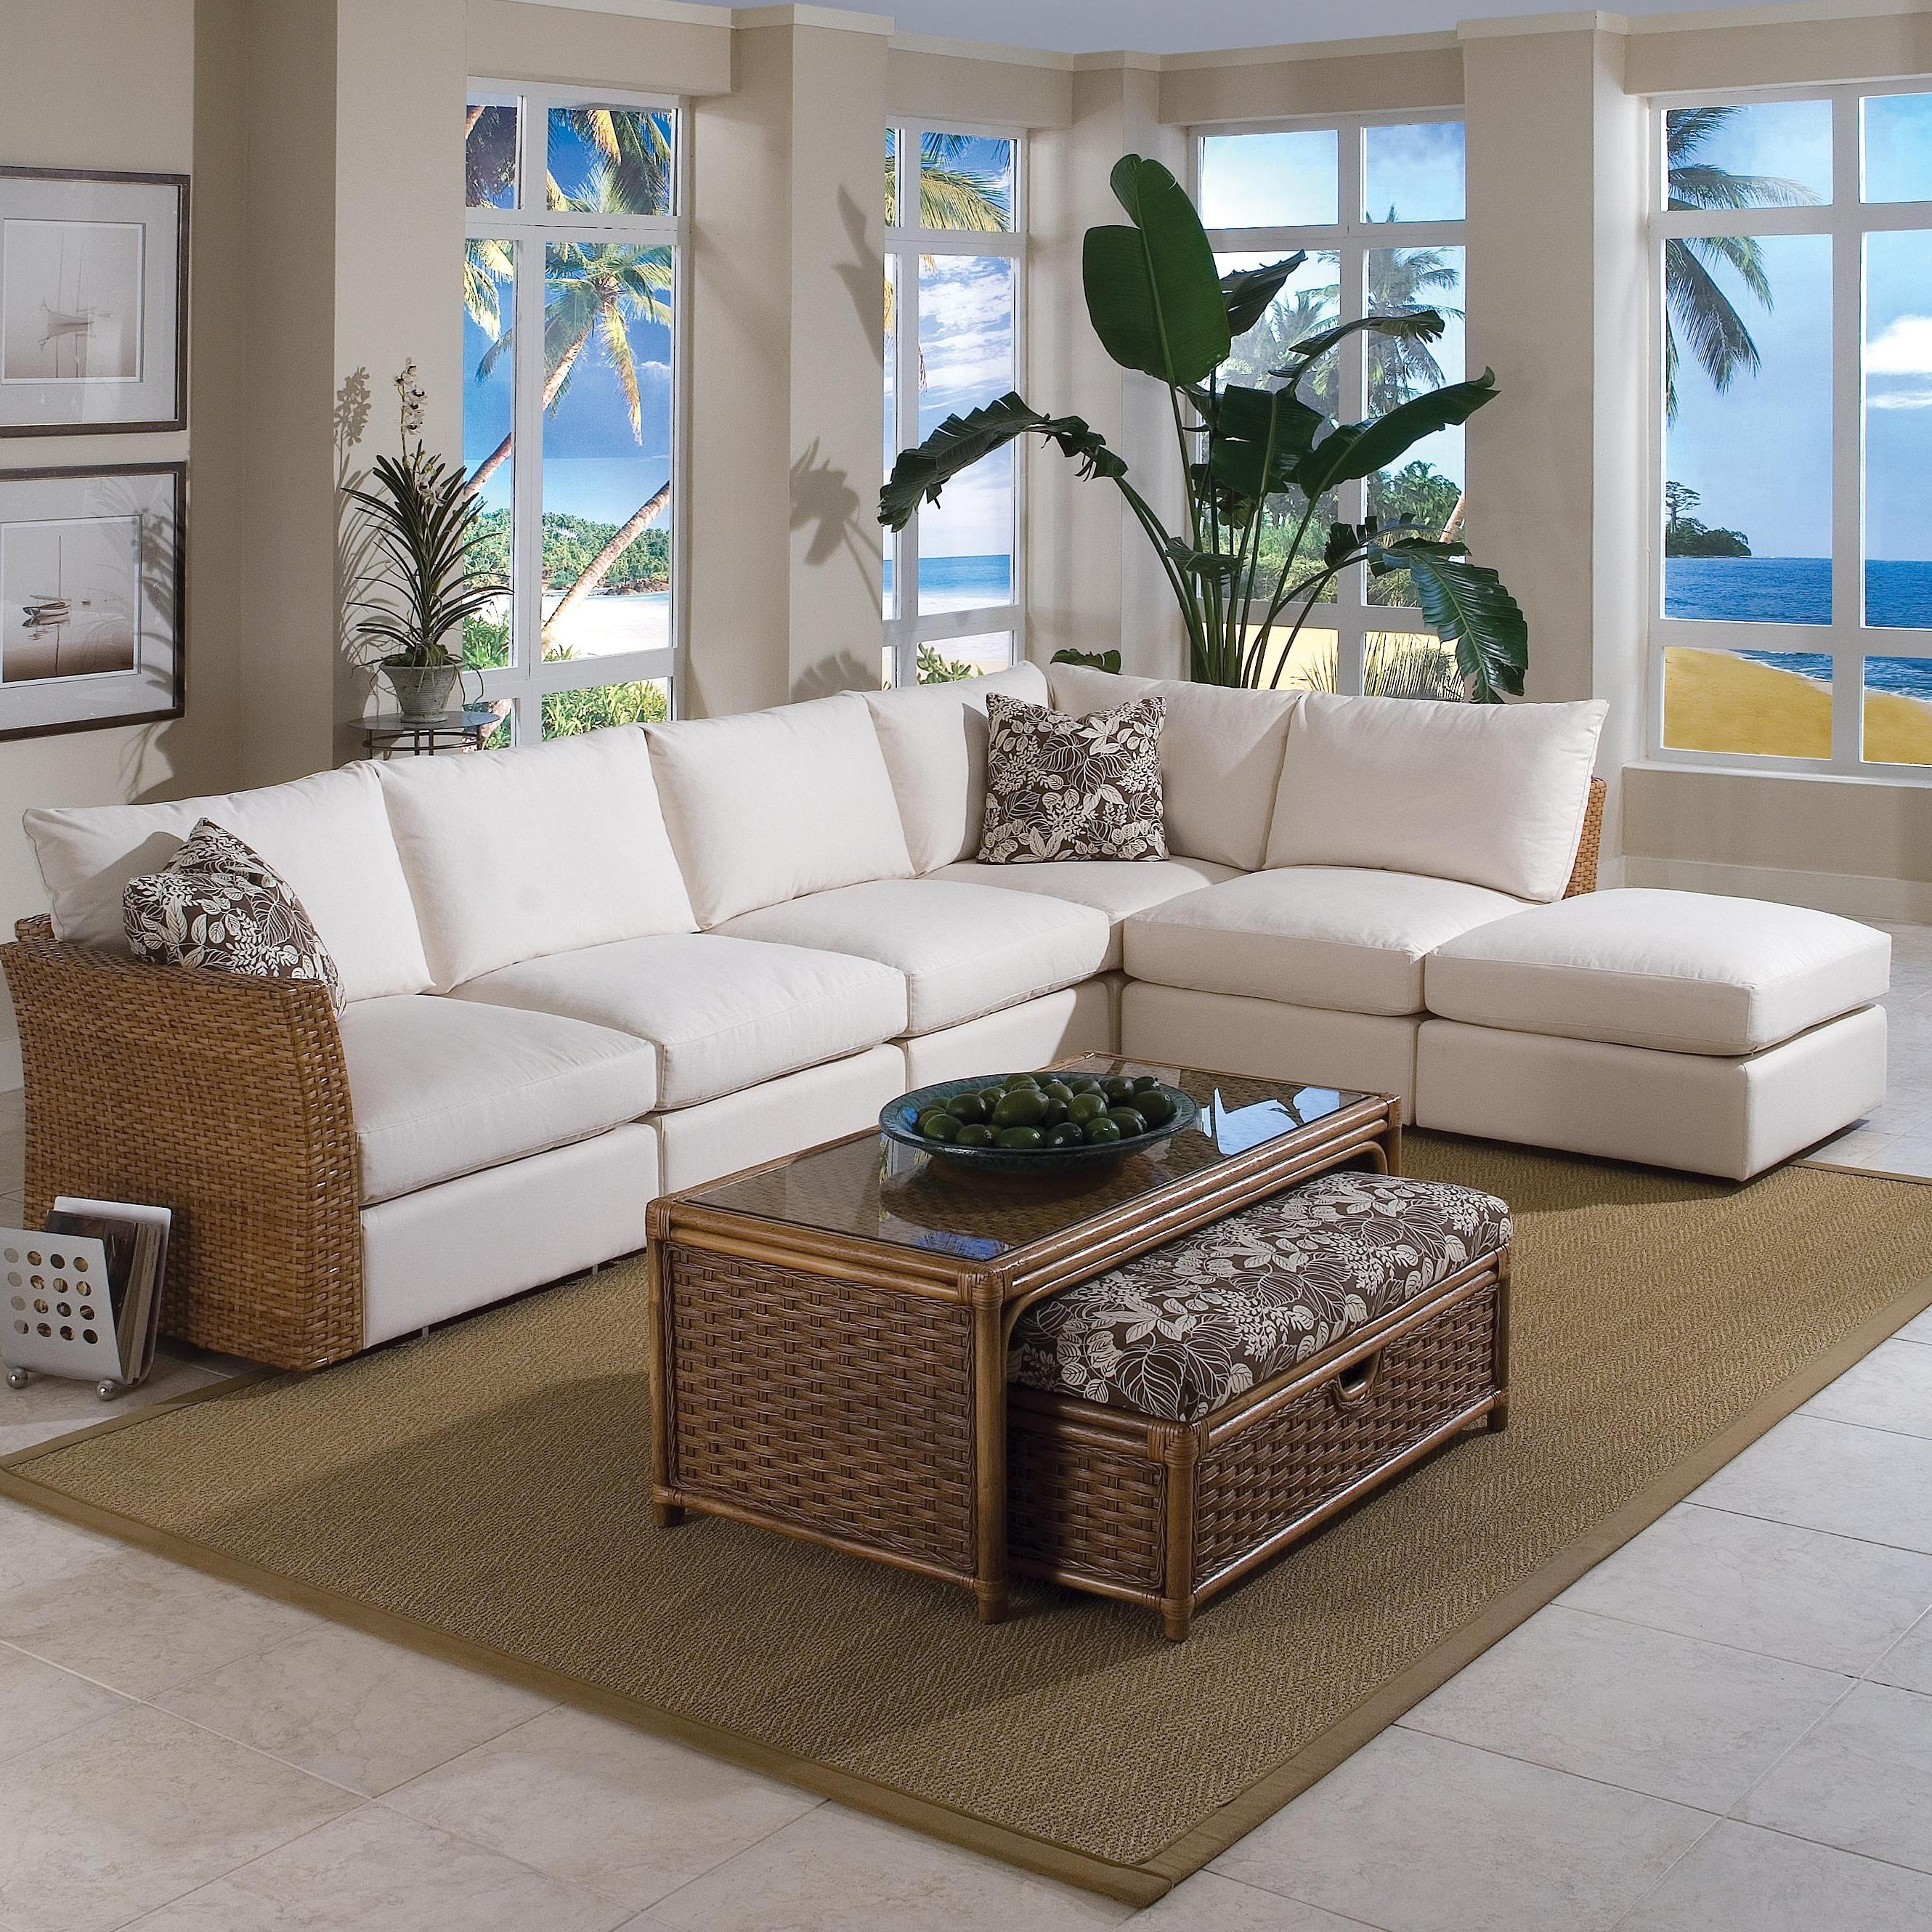 Kanes Sectional Sofas Inside Trendy Braxton Culler Grand Water Point Tropical Sectional Sofa With Two (View 6 of 20)